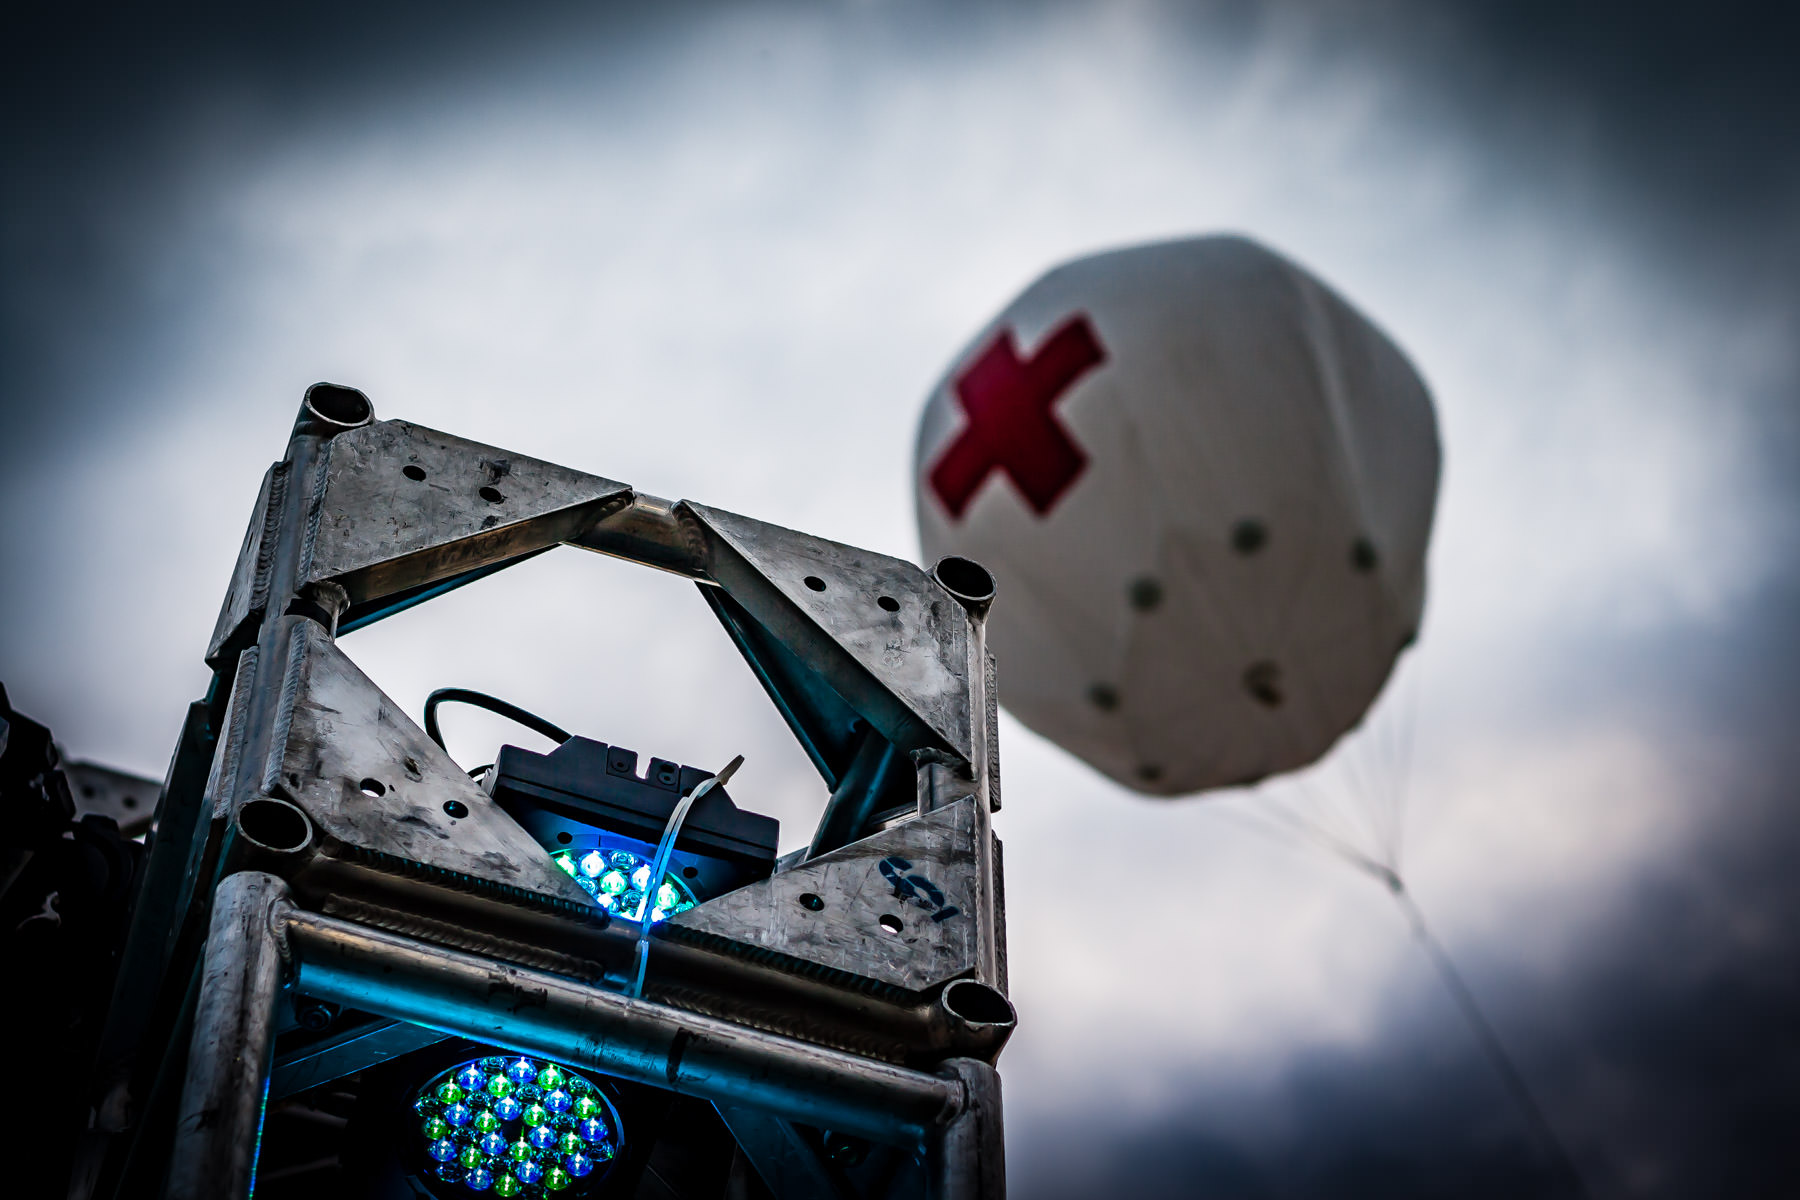 A lighting truss and a balloon marking the first aid station at the Plano Balloon Festival, Texas.